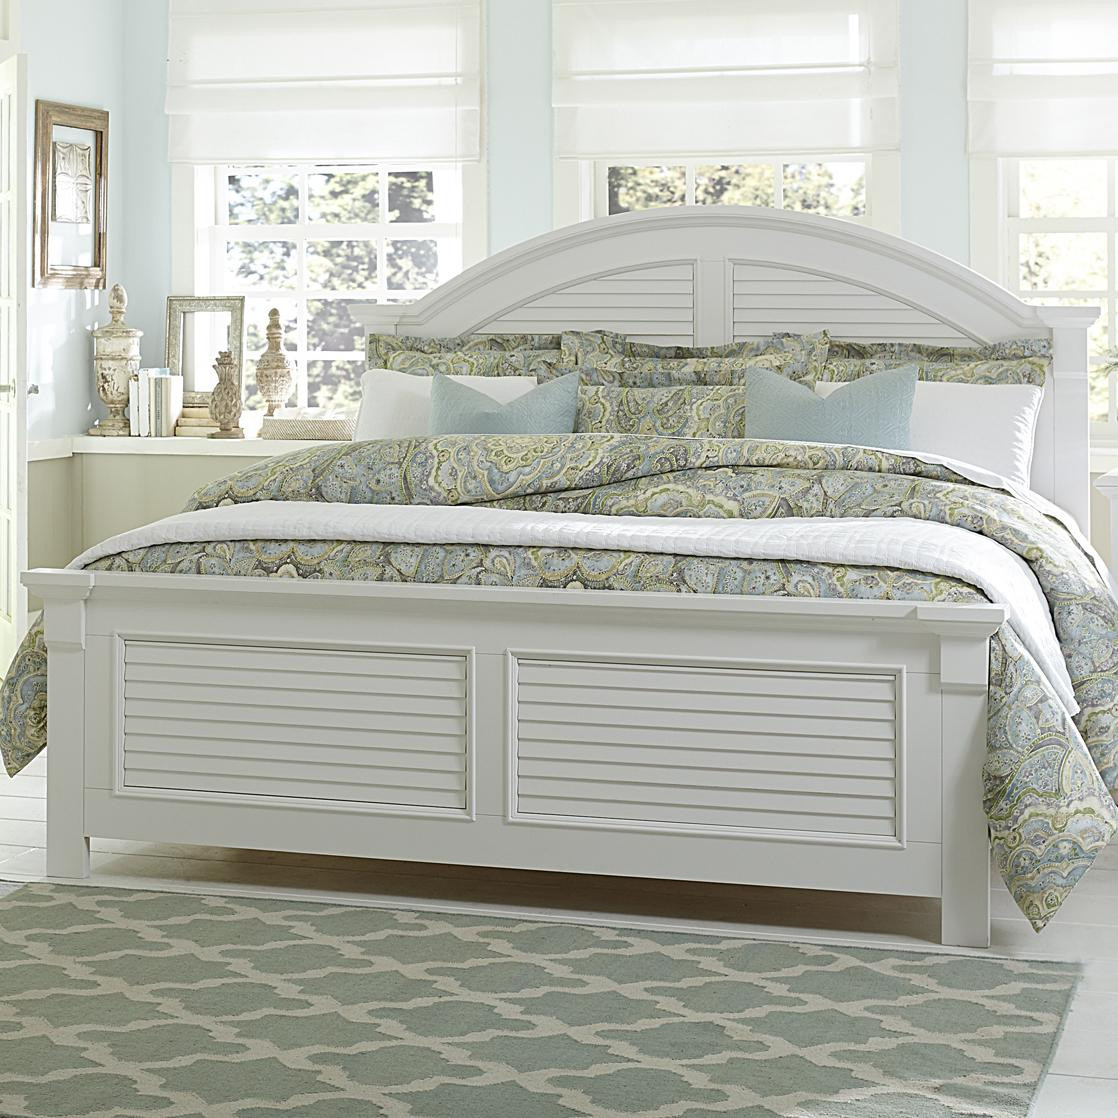 The Summer House Storage Queen Bed Sold At Rose Brothers Furniture Serving Wilmington And